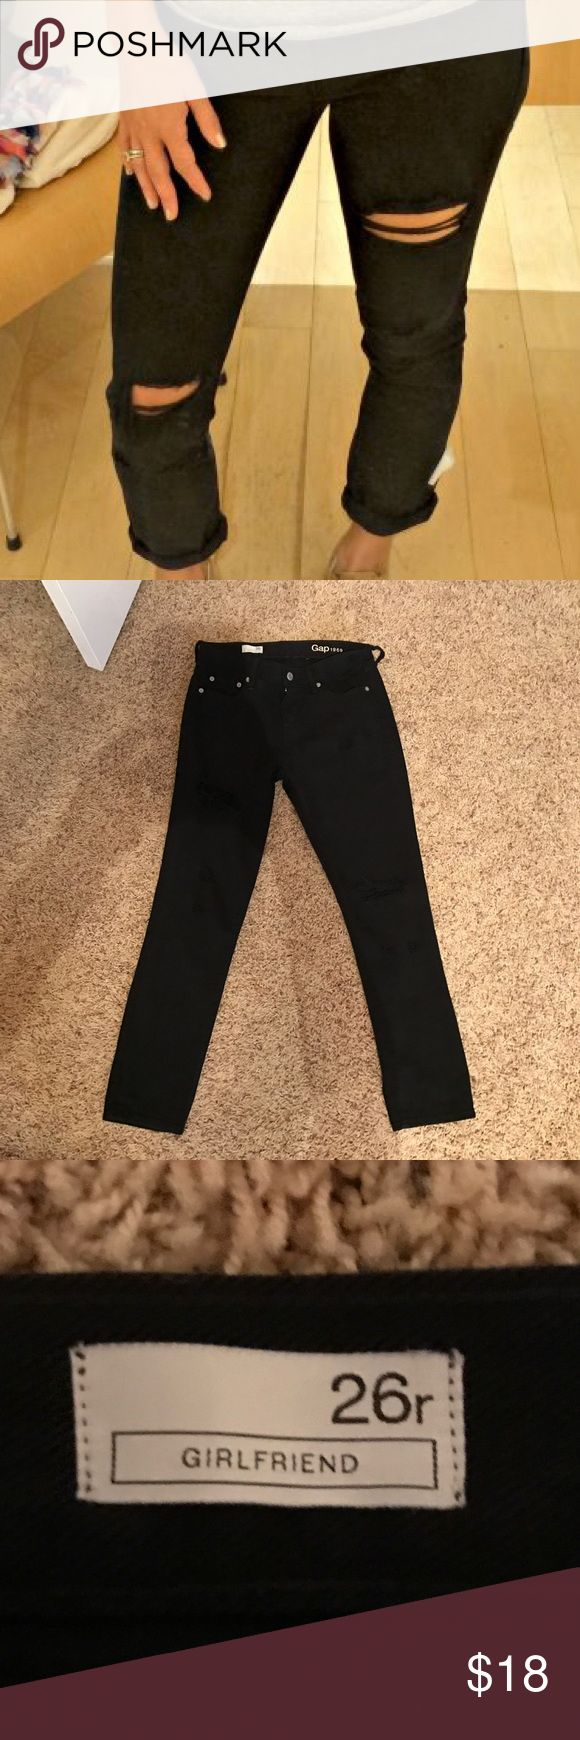 Gap Black Girlfriend Jeans Only worn once, Gap Girlfriend fit jeans with a little distressing, size 26! perfect for so many outfits! GAP Jeans Boyfriend